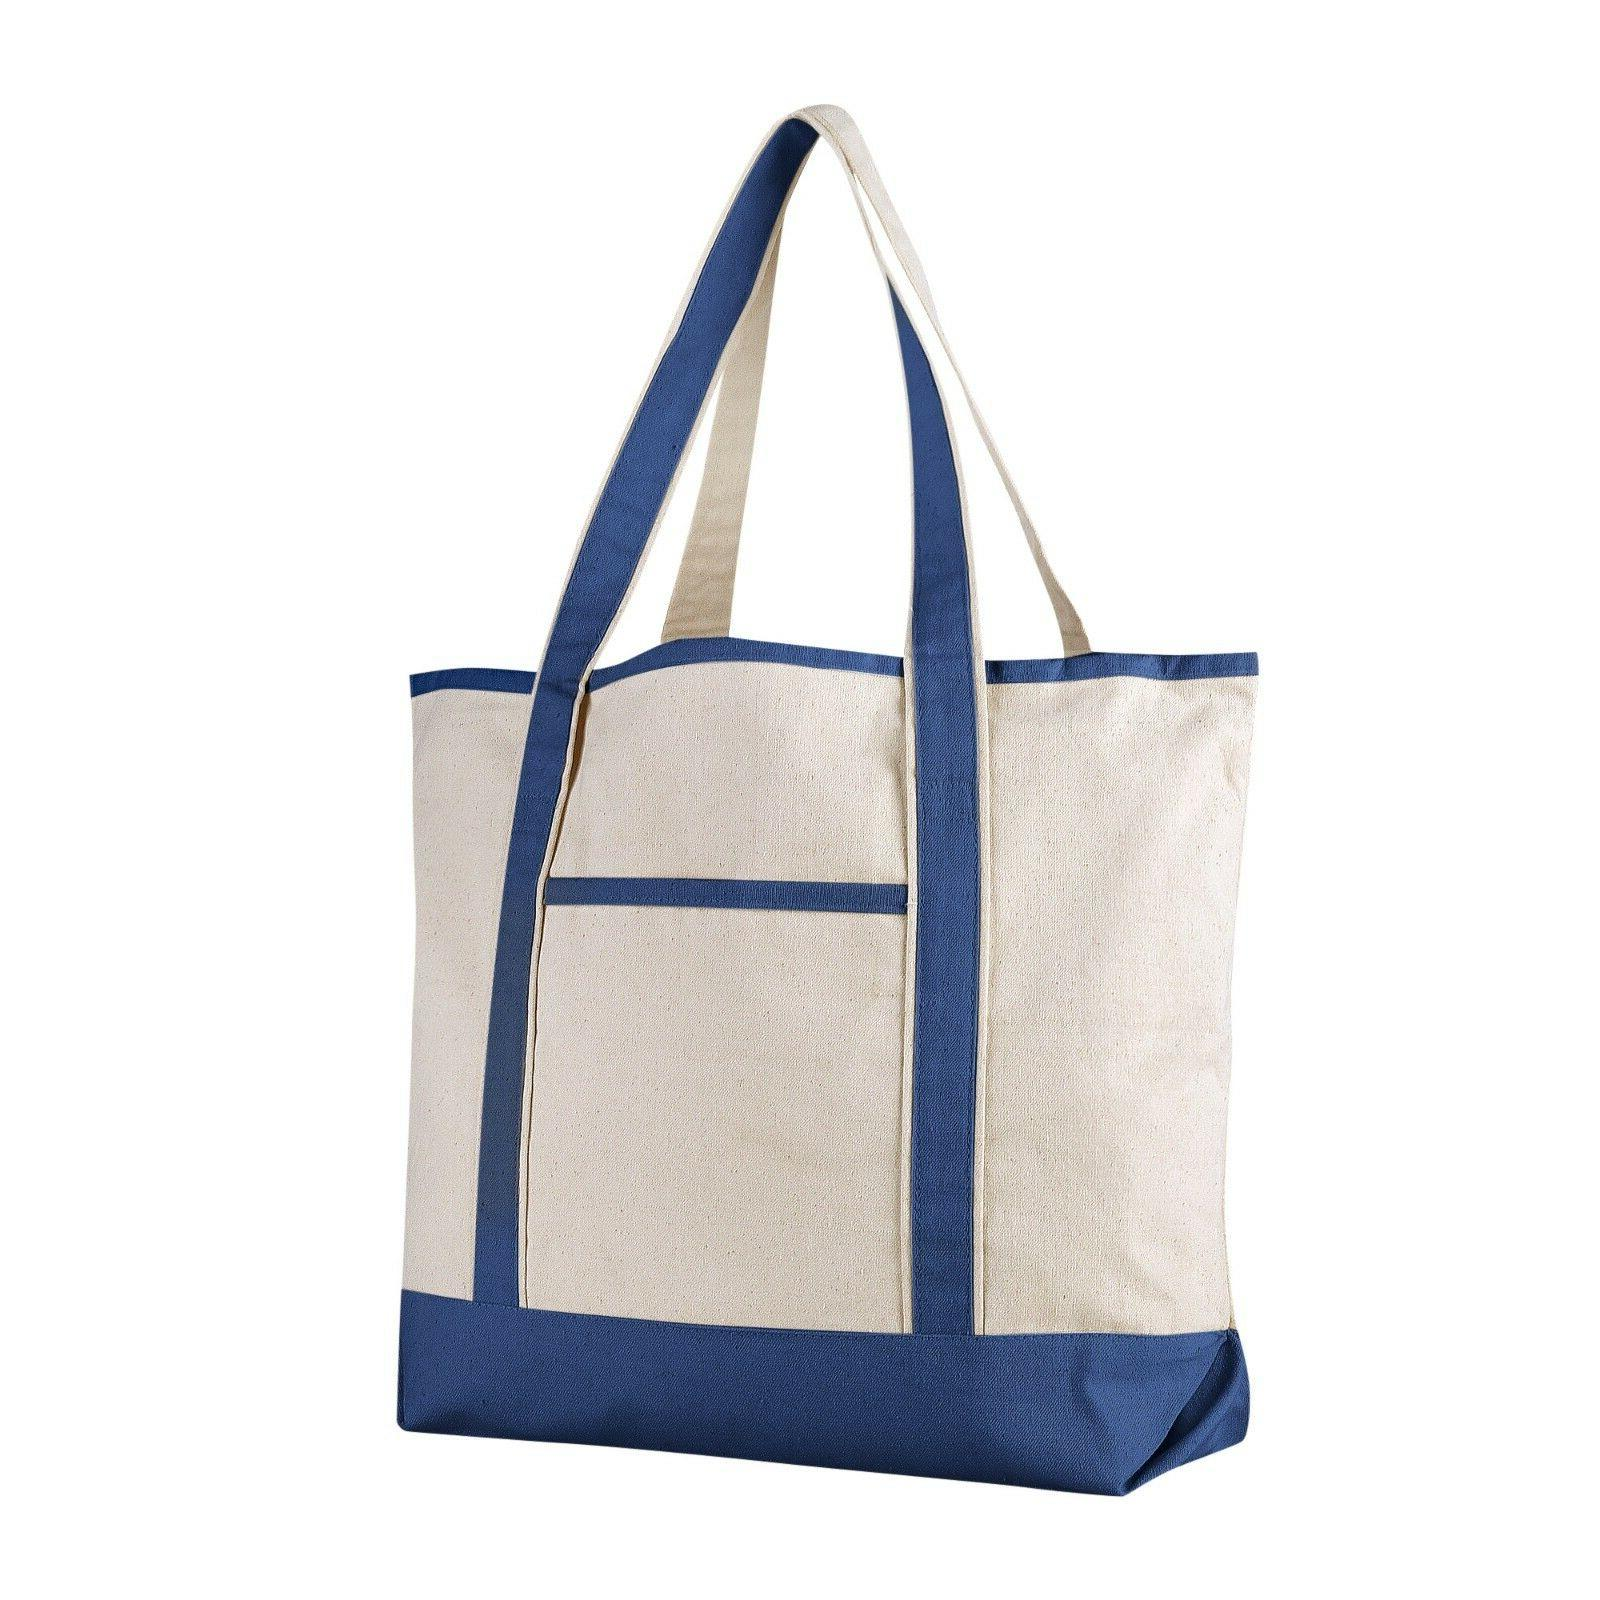 Extra Sturdy Tote Canvas for HTV, Work